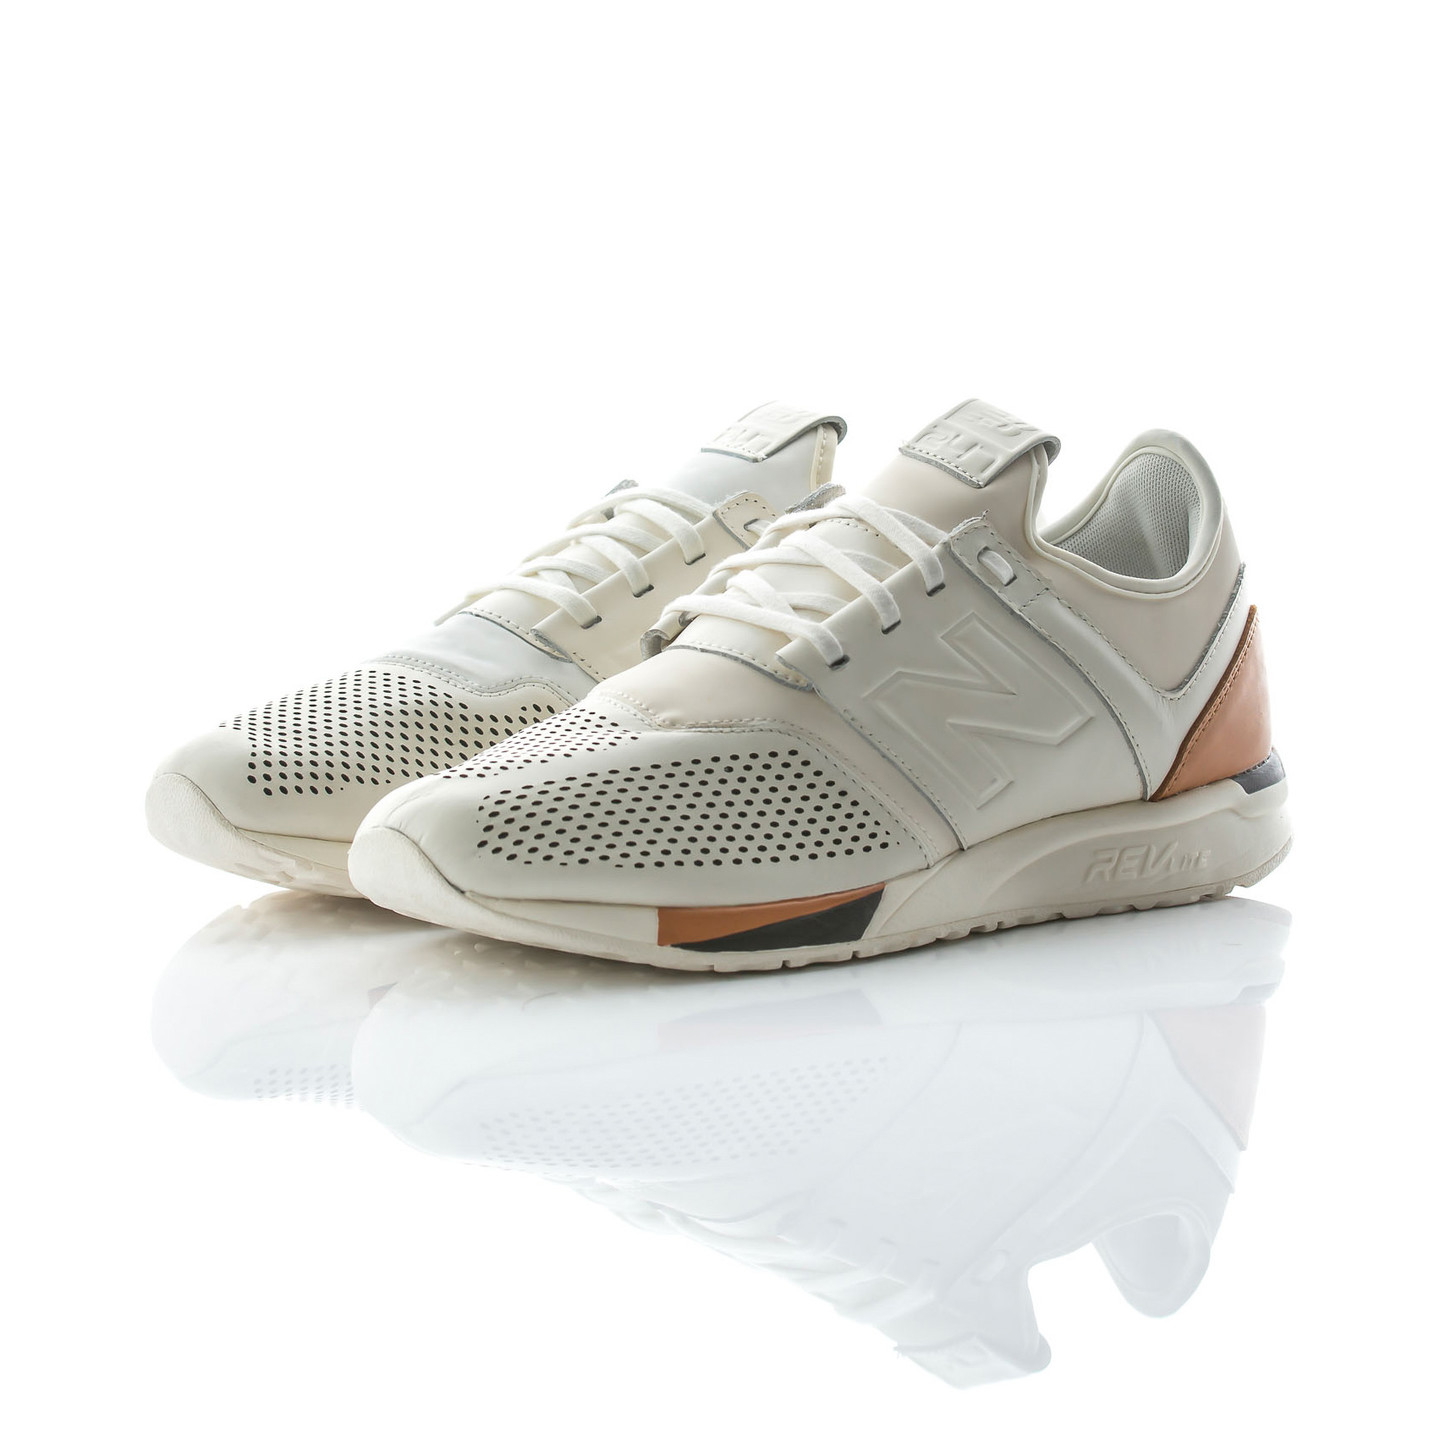 New Balance MRL 247 'Luxe Pack' Off White / Brown MRL247BE-45